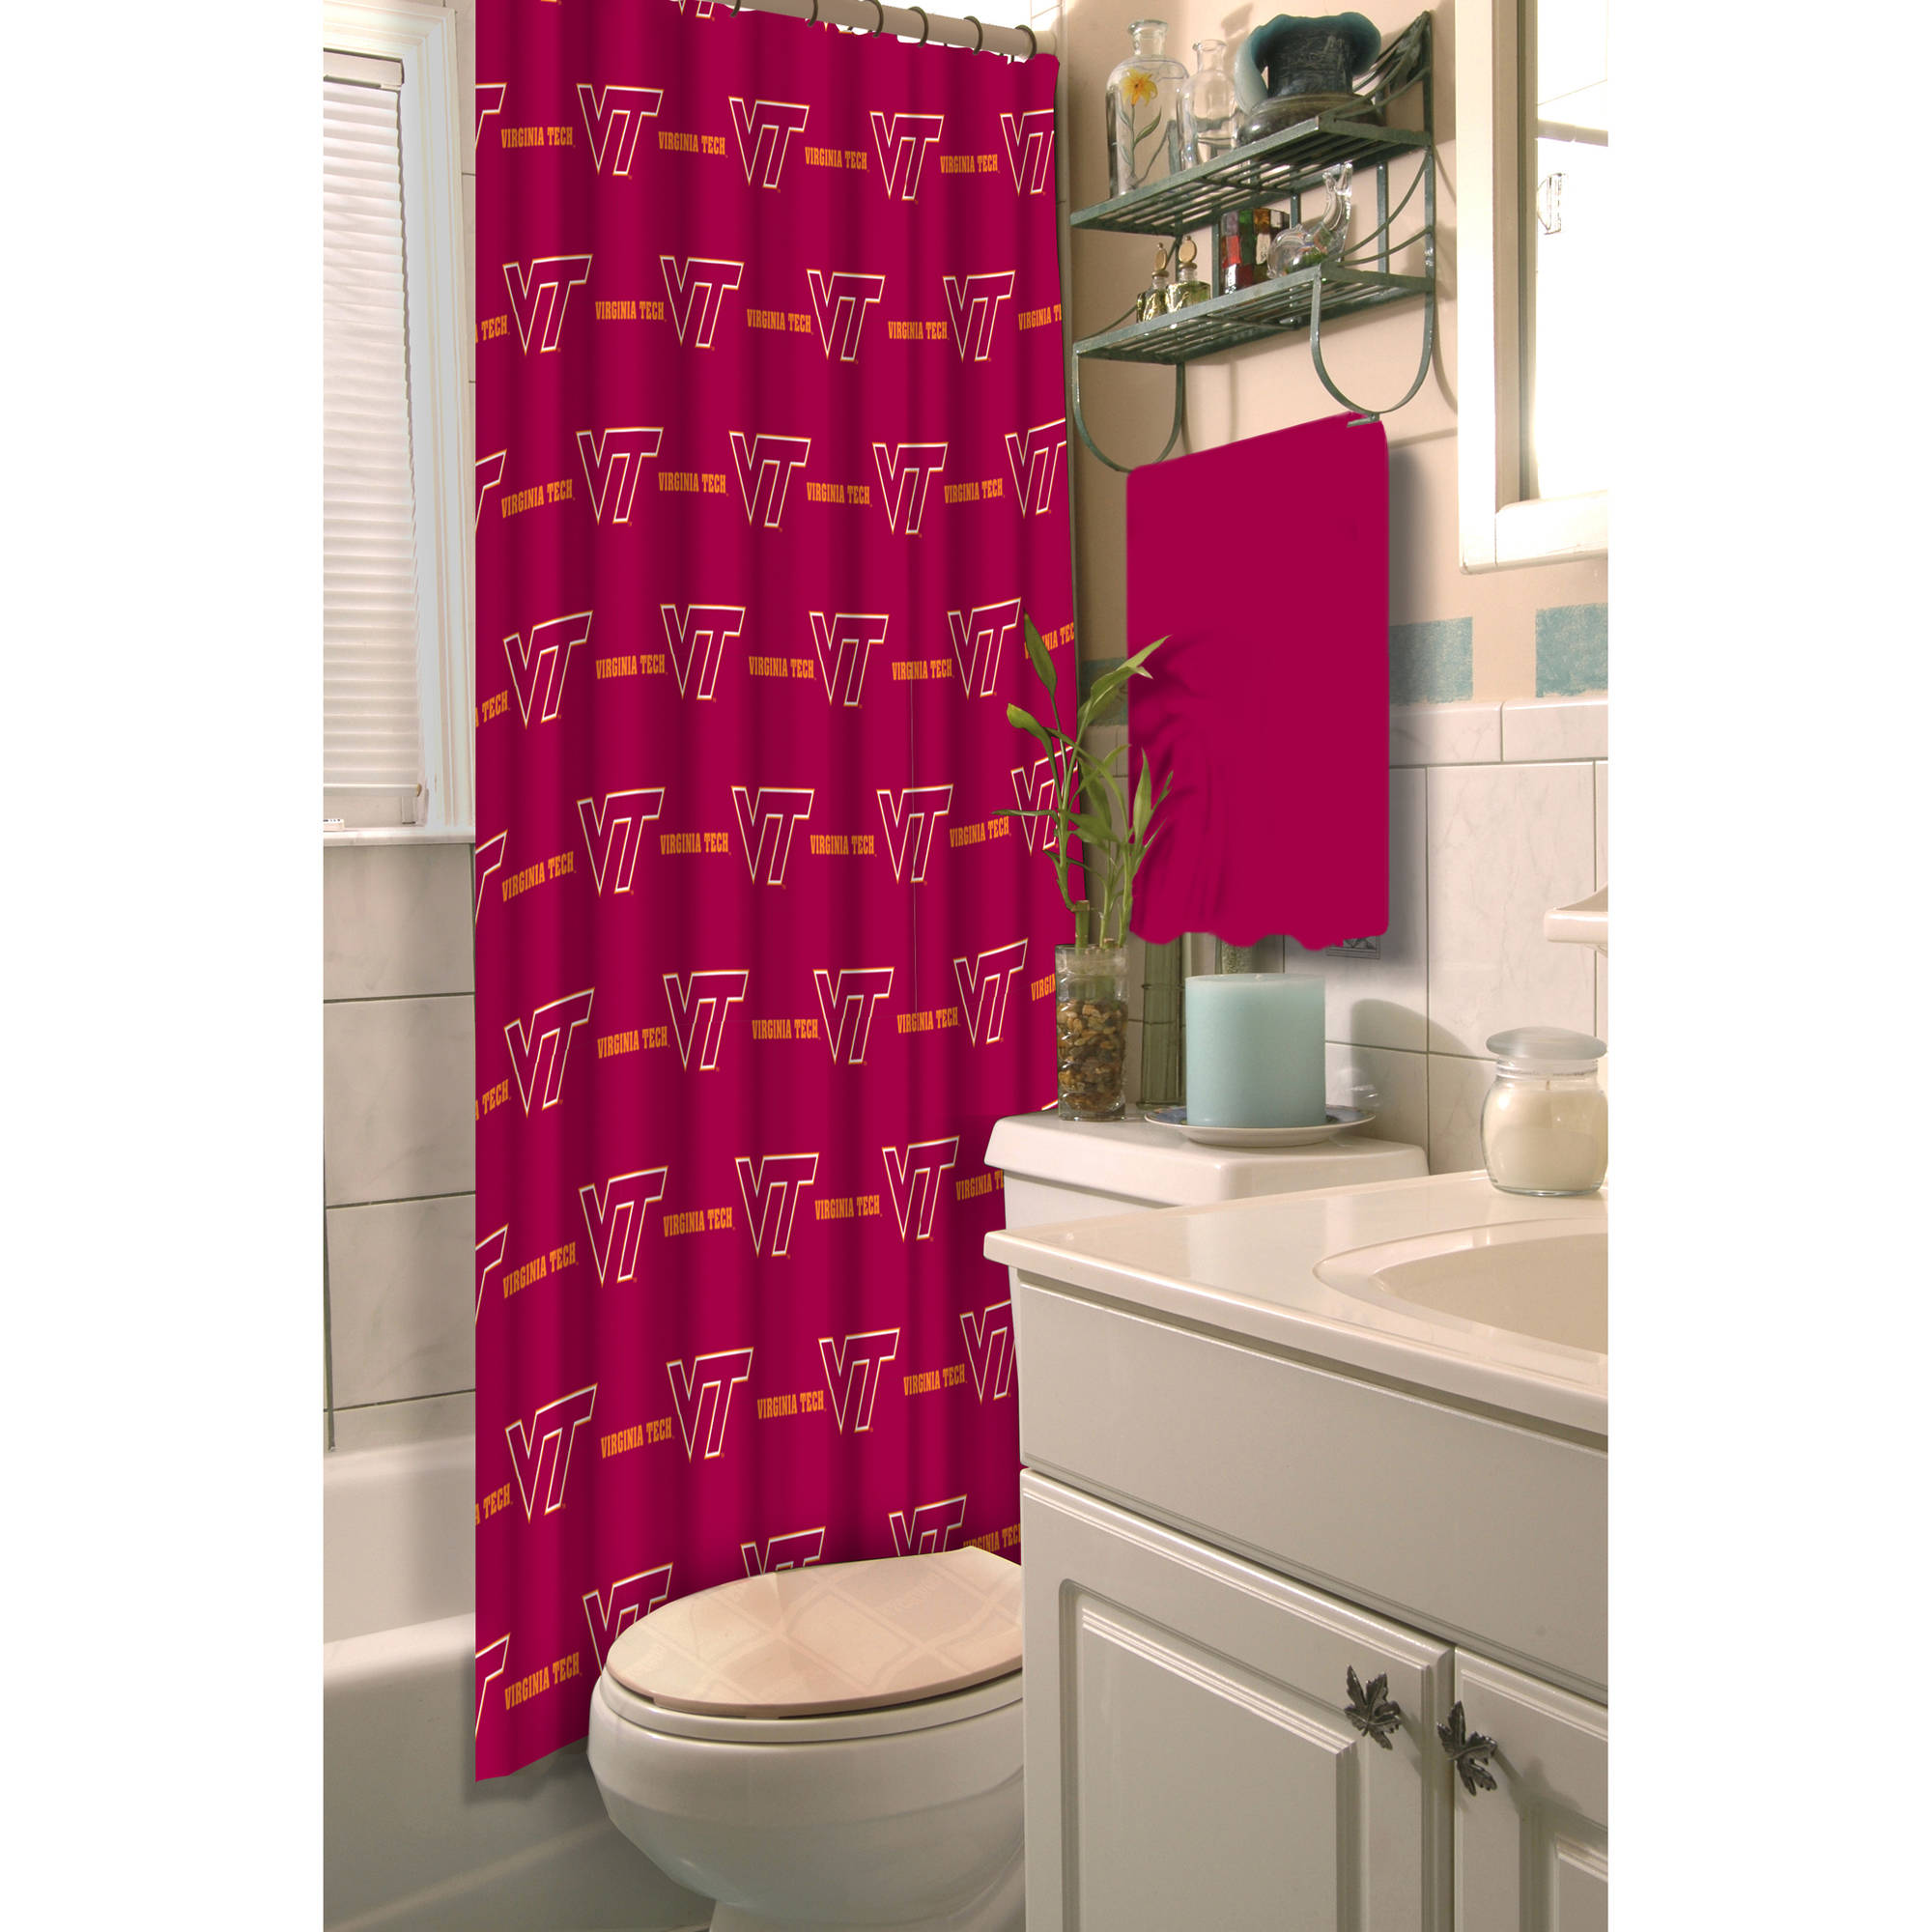 Ncaa Virginia Tech Shower Curtain 1 Each Walmart Com